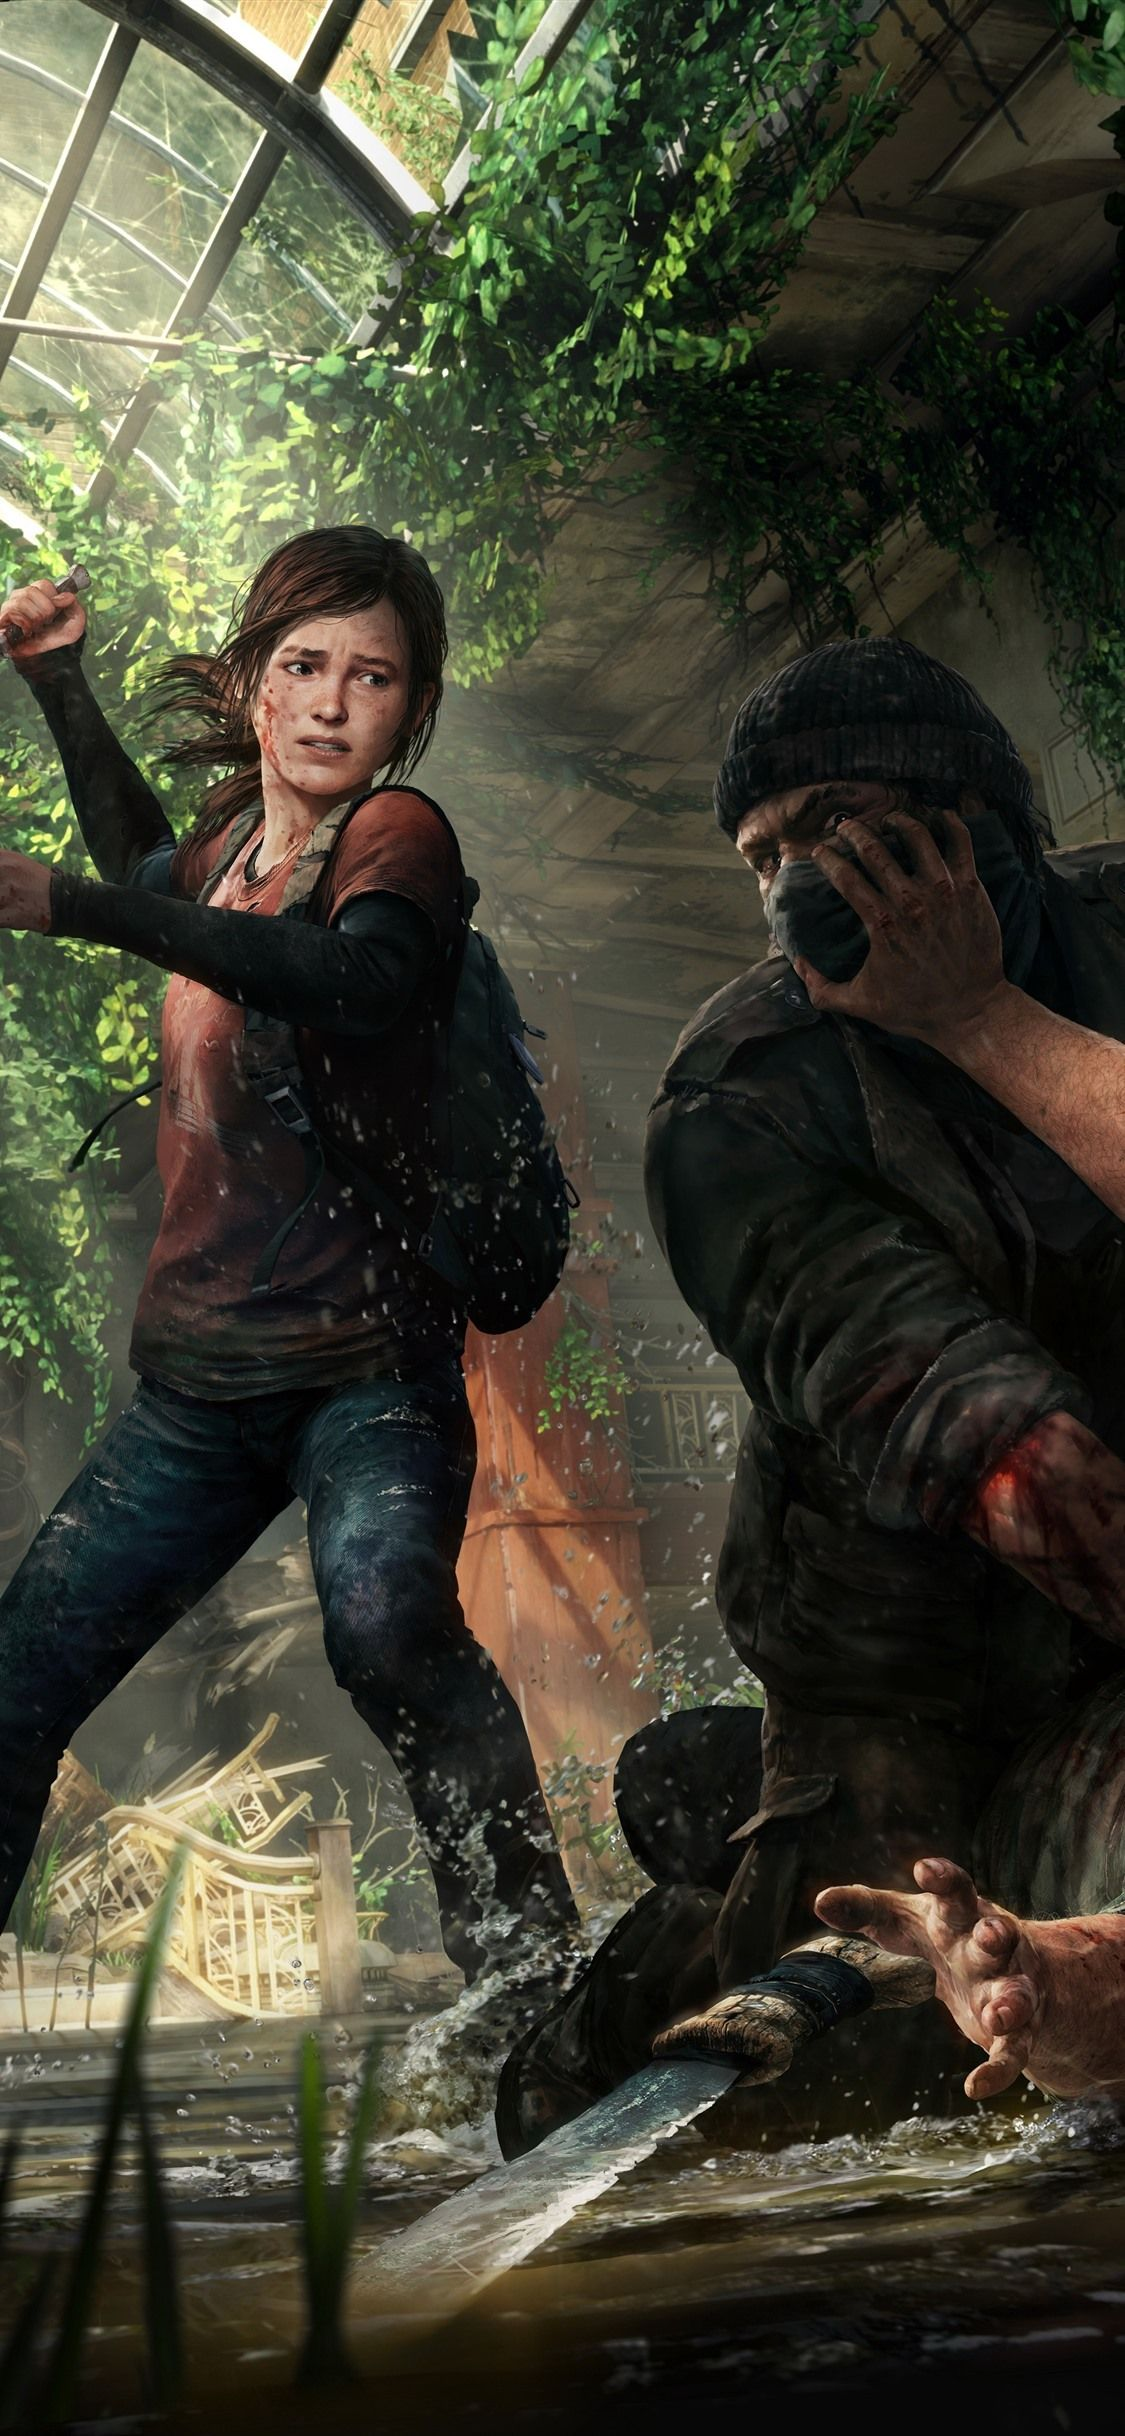 Fondo de pantalla de The Last of Us 1125x2436